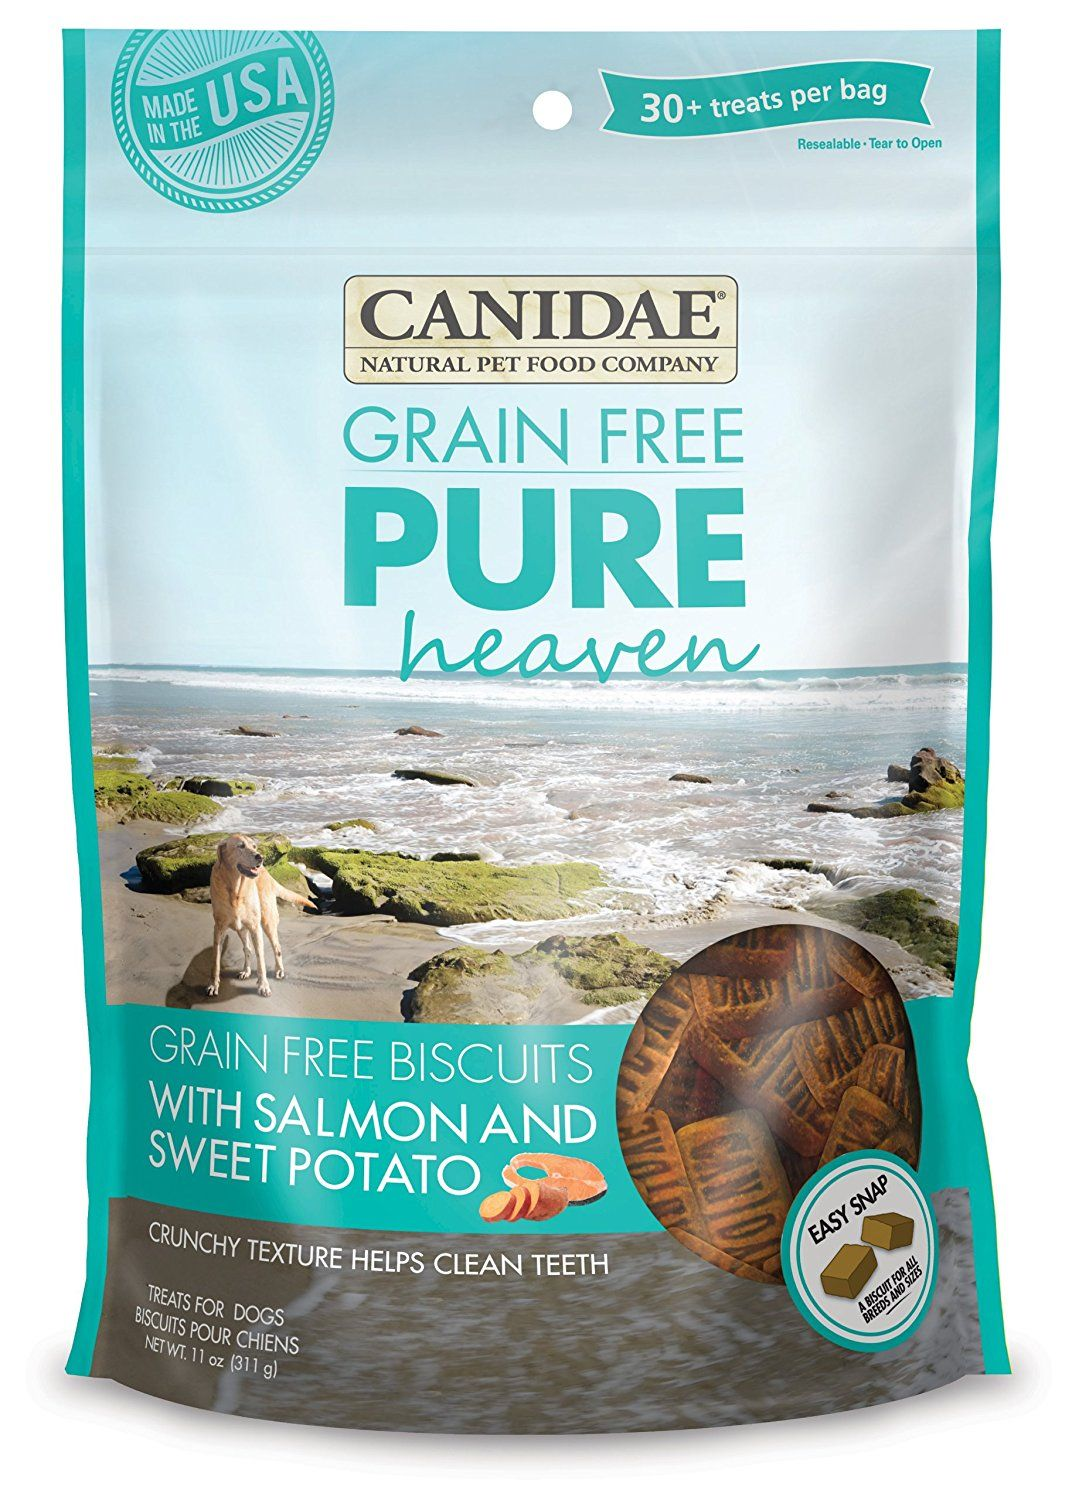 Canidae Grain Free Pure Heaven Biscuits Wow I Love This Check